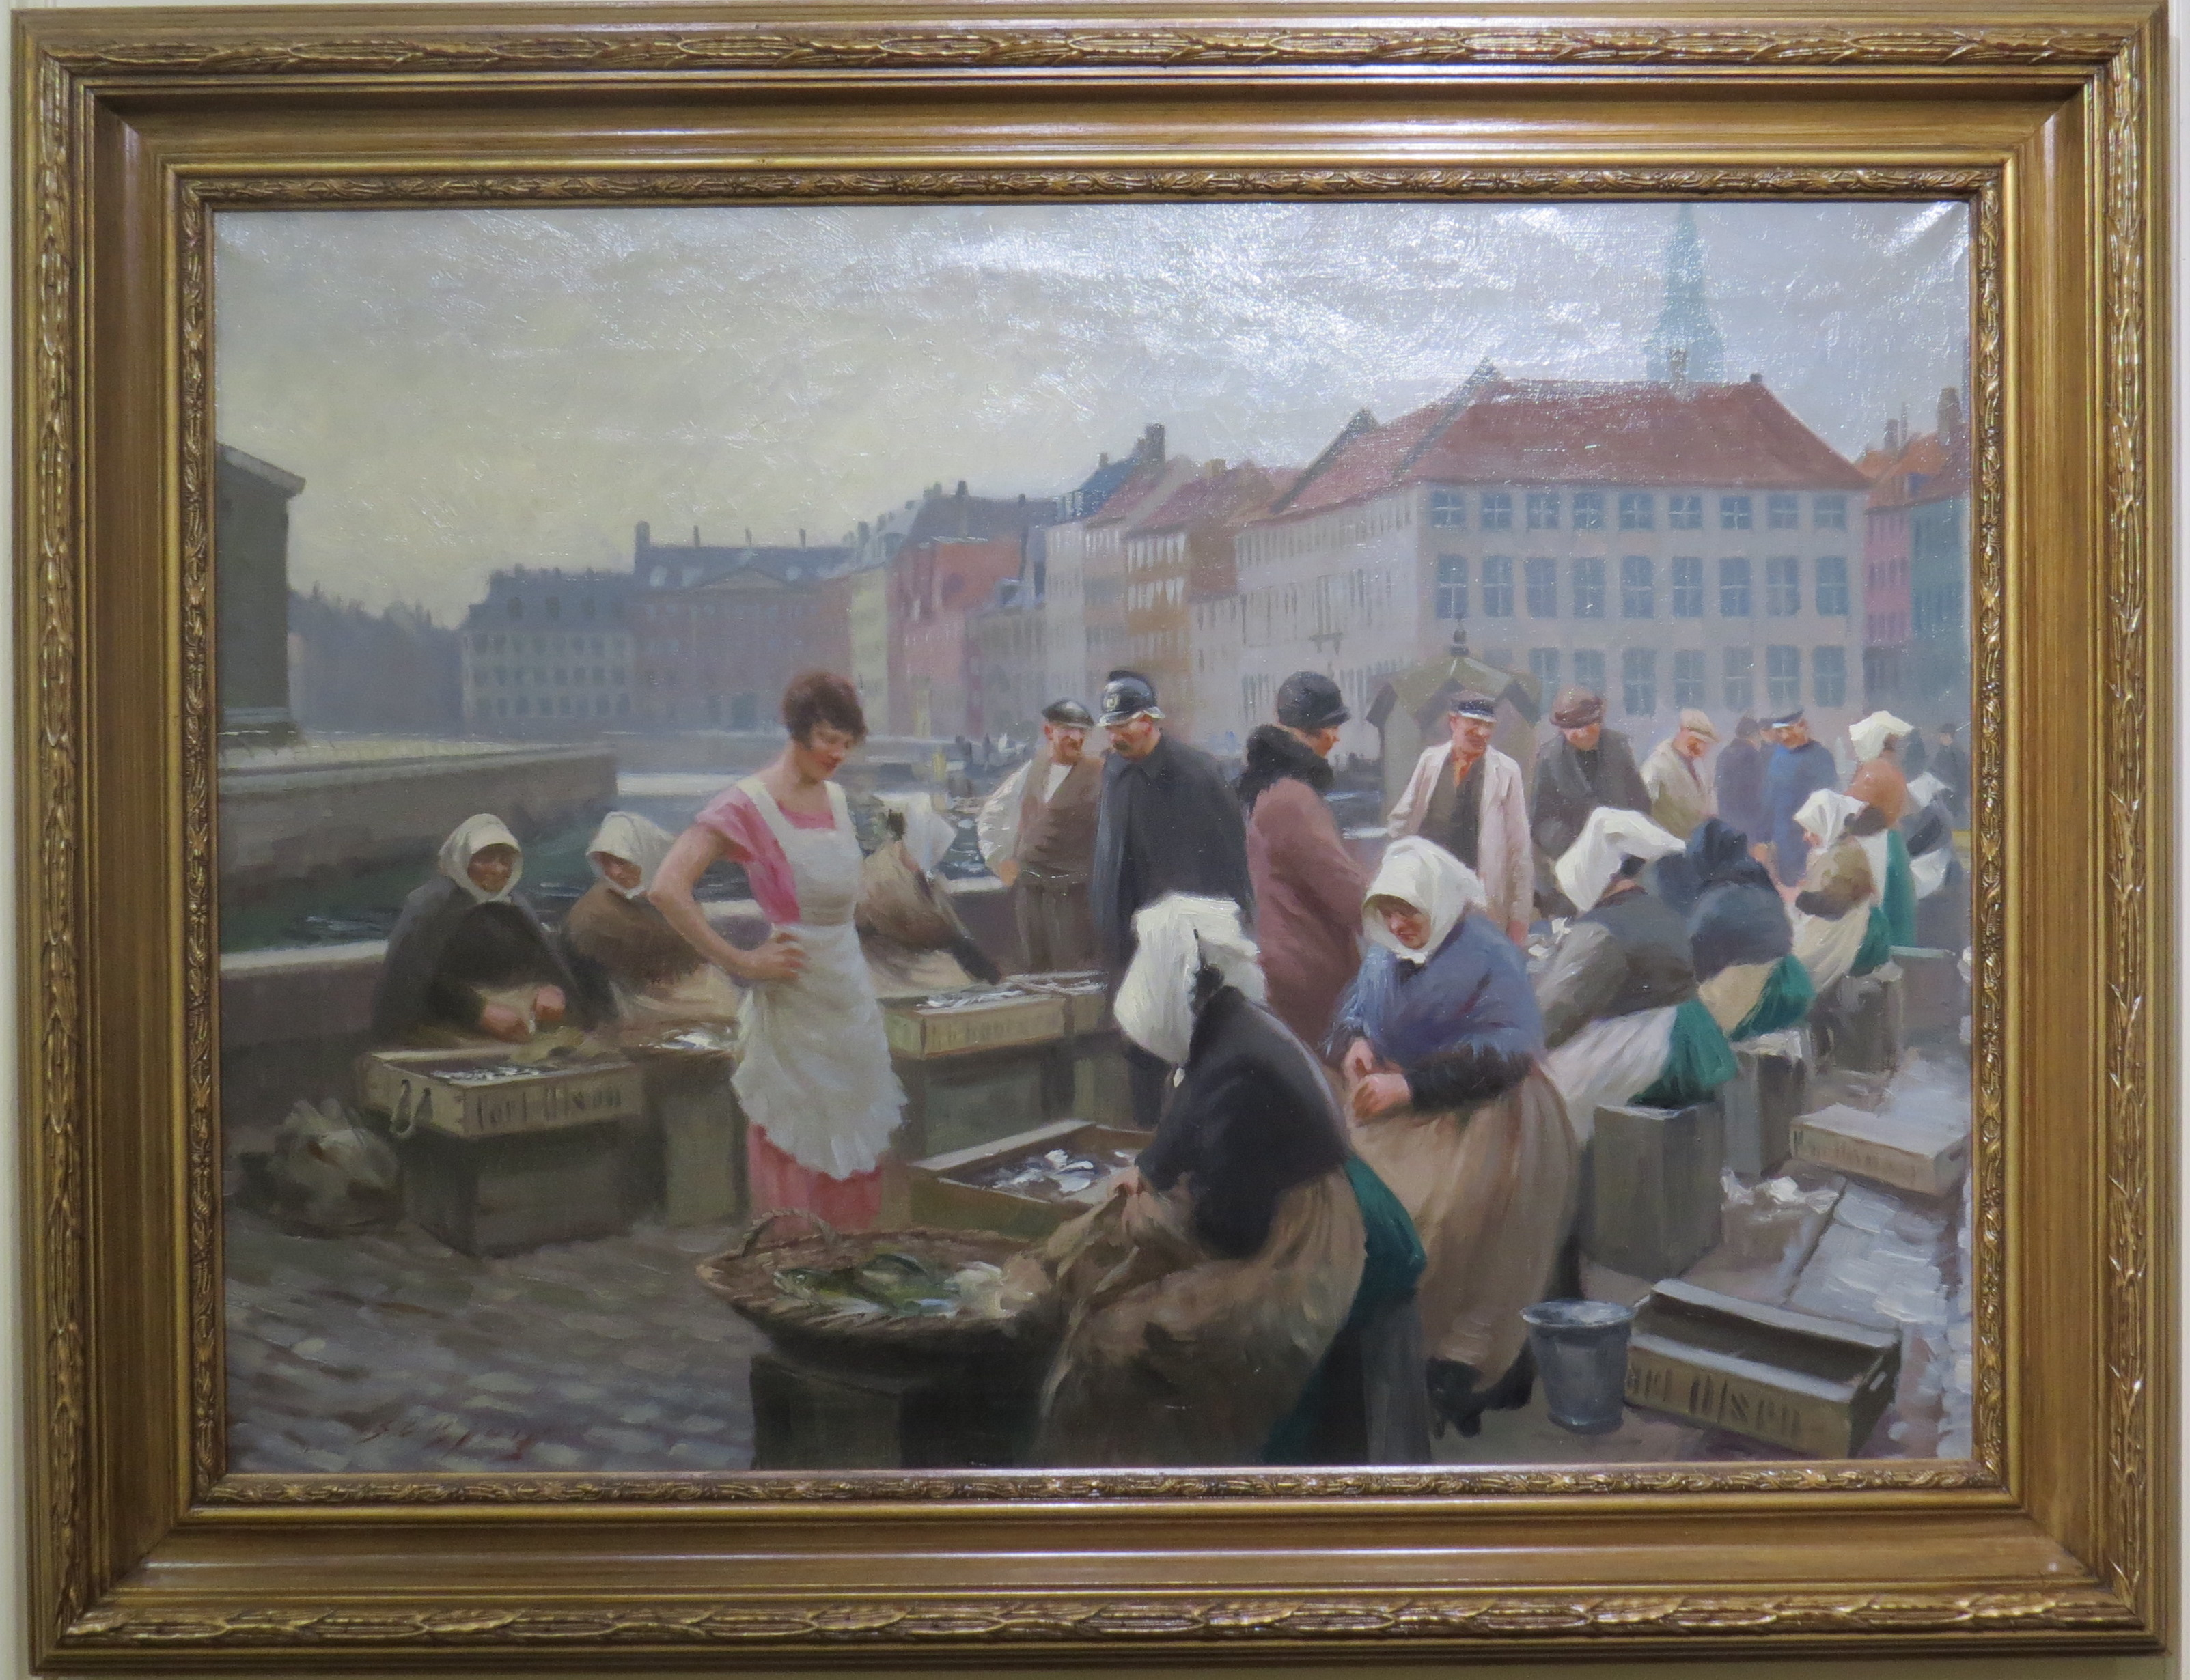 Oil On Canvas Of An Early 20th Century Danish Market